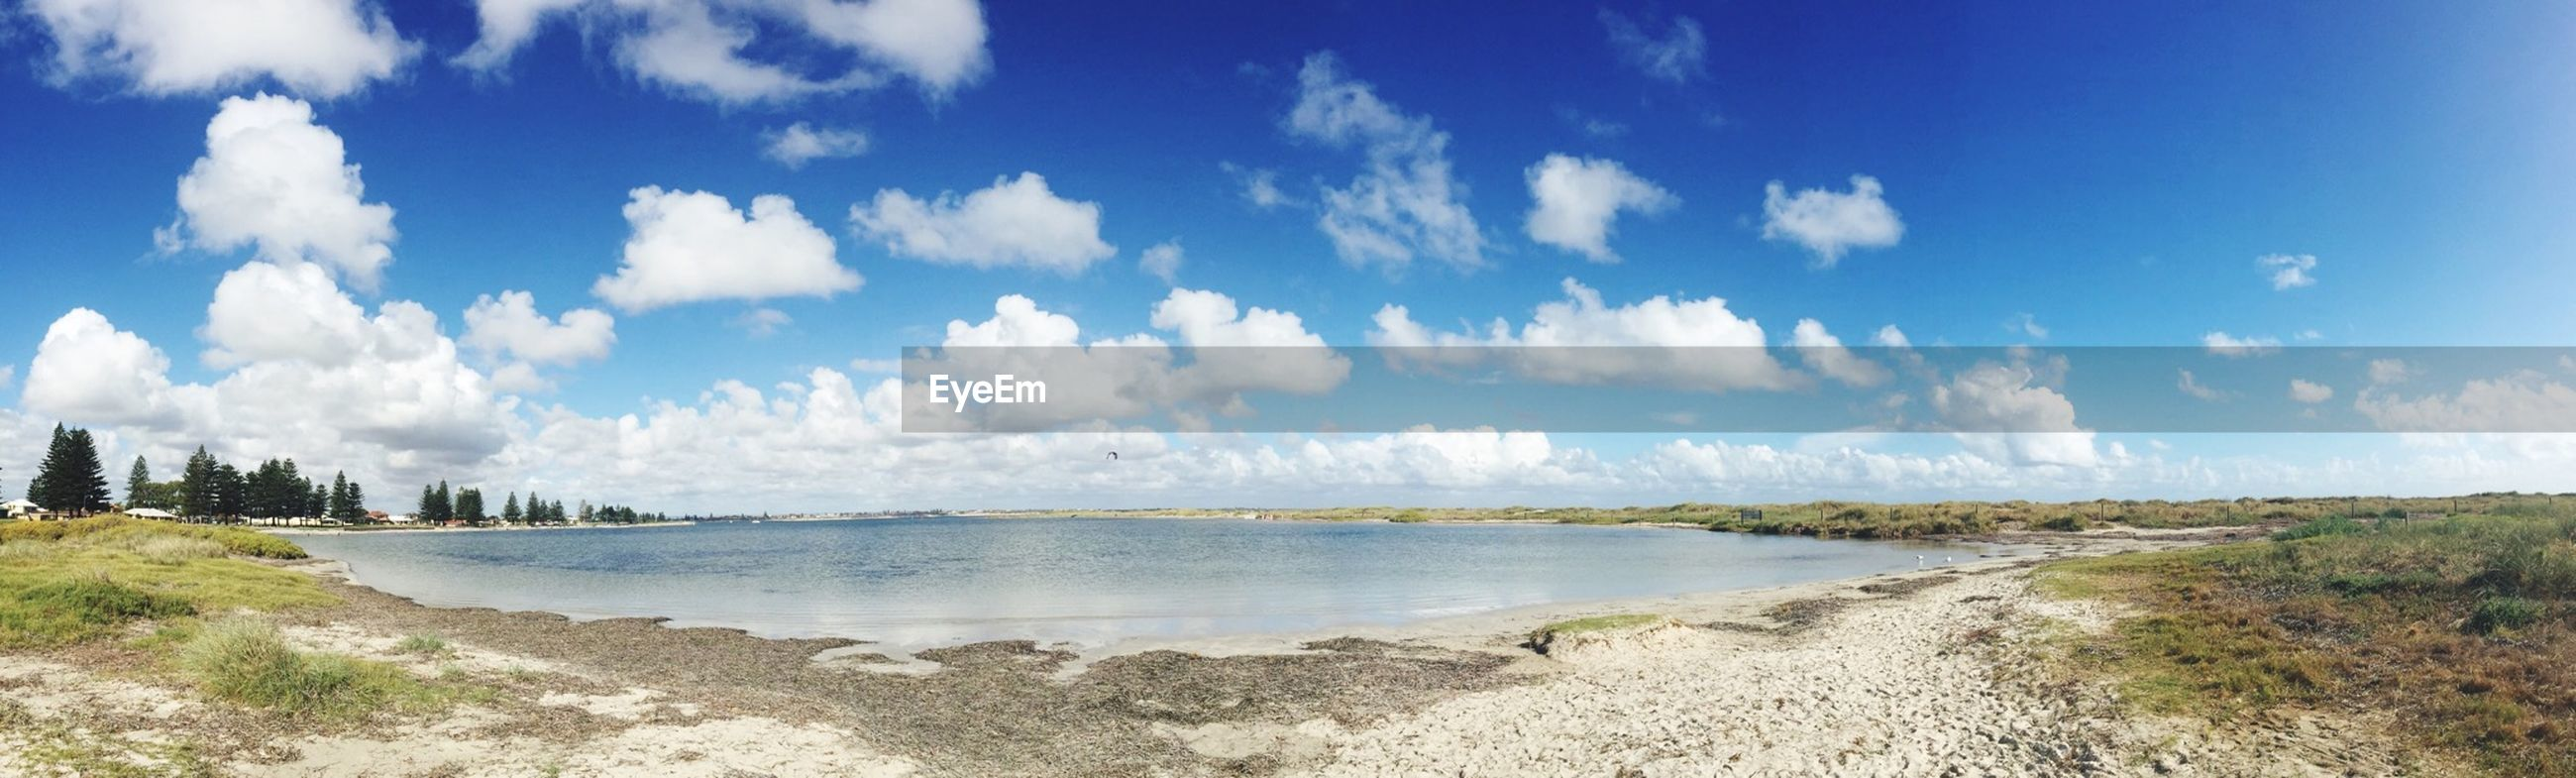 water, sky, tranquil scene, tranquility, scenics, beauty in nature, blue, nature, sea, cloud - sky, beach, cloud, shore, idyllic, panoramic, day, sunlight, grass, outdoors, non-urban scene